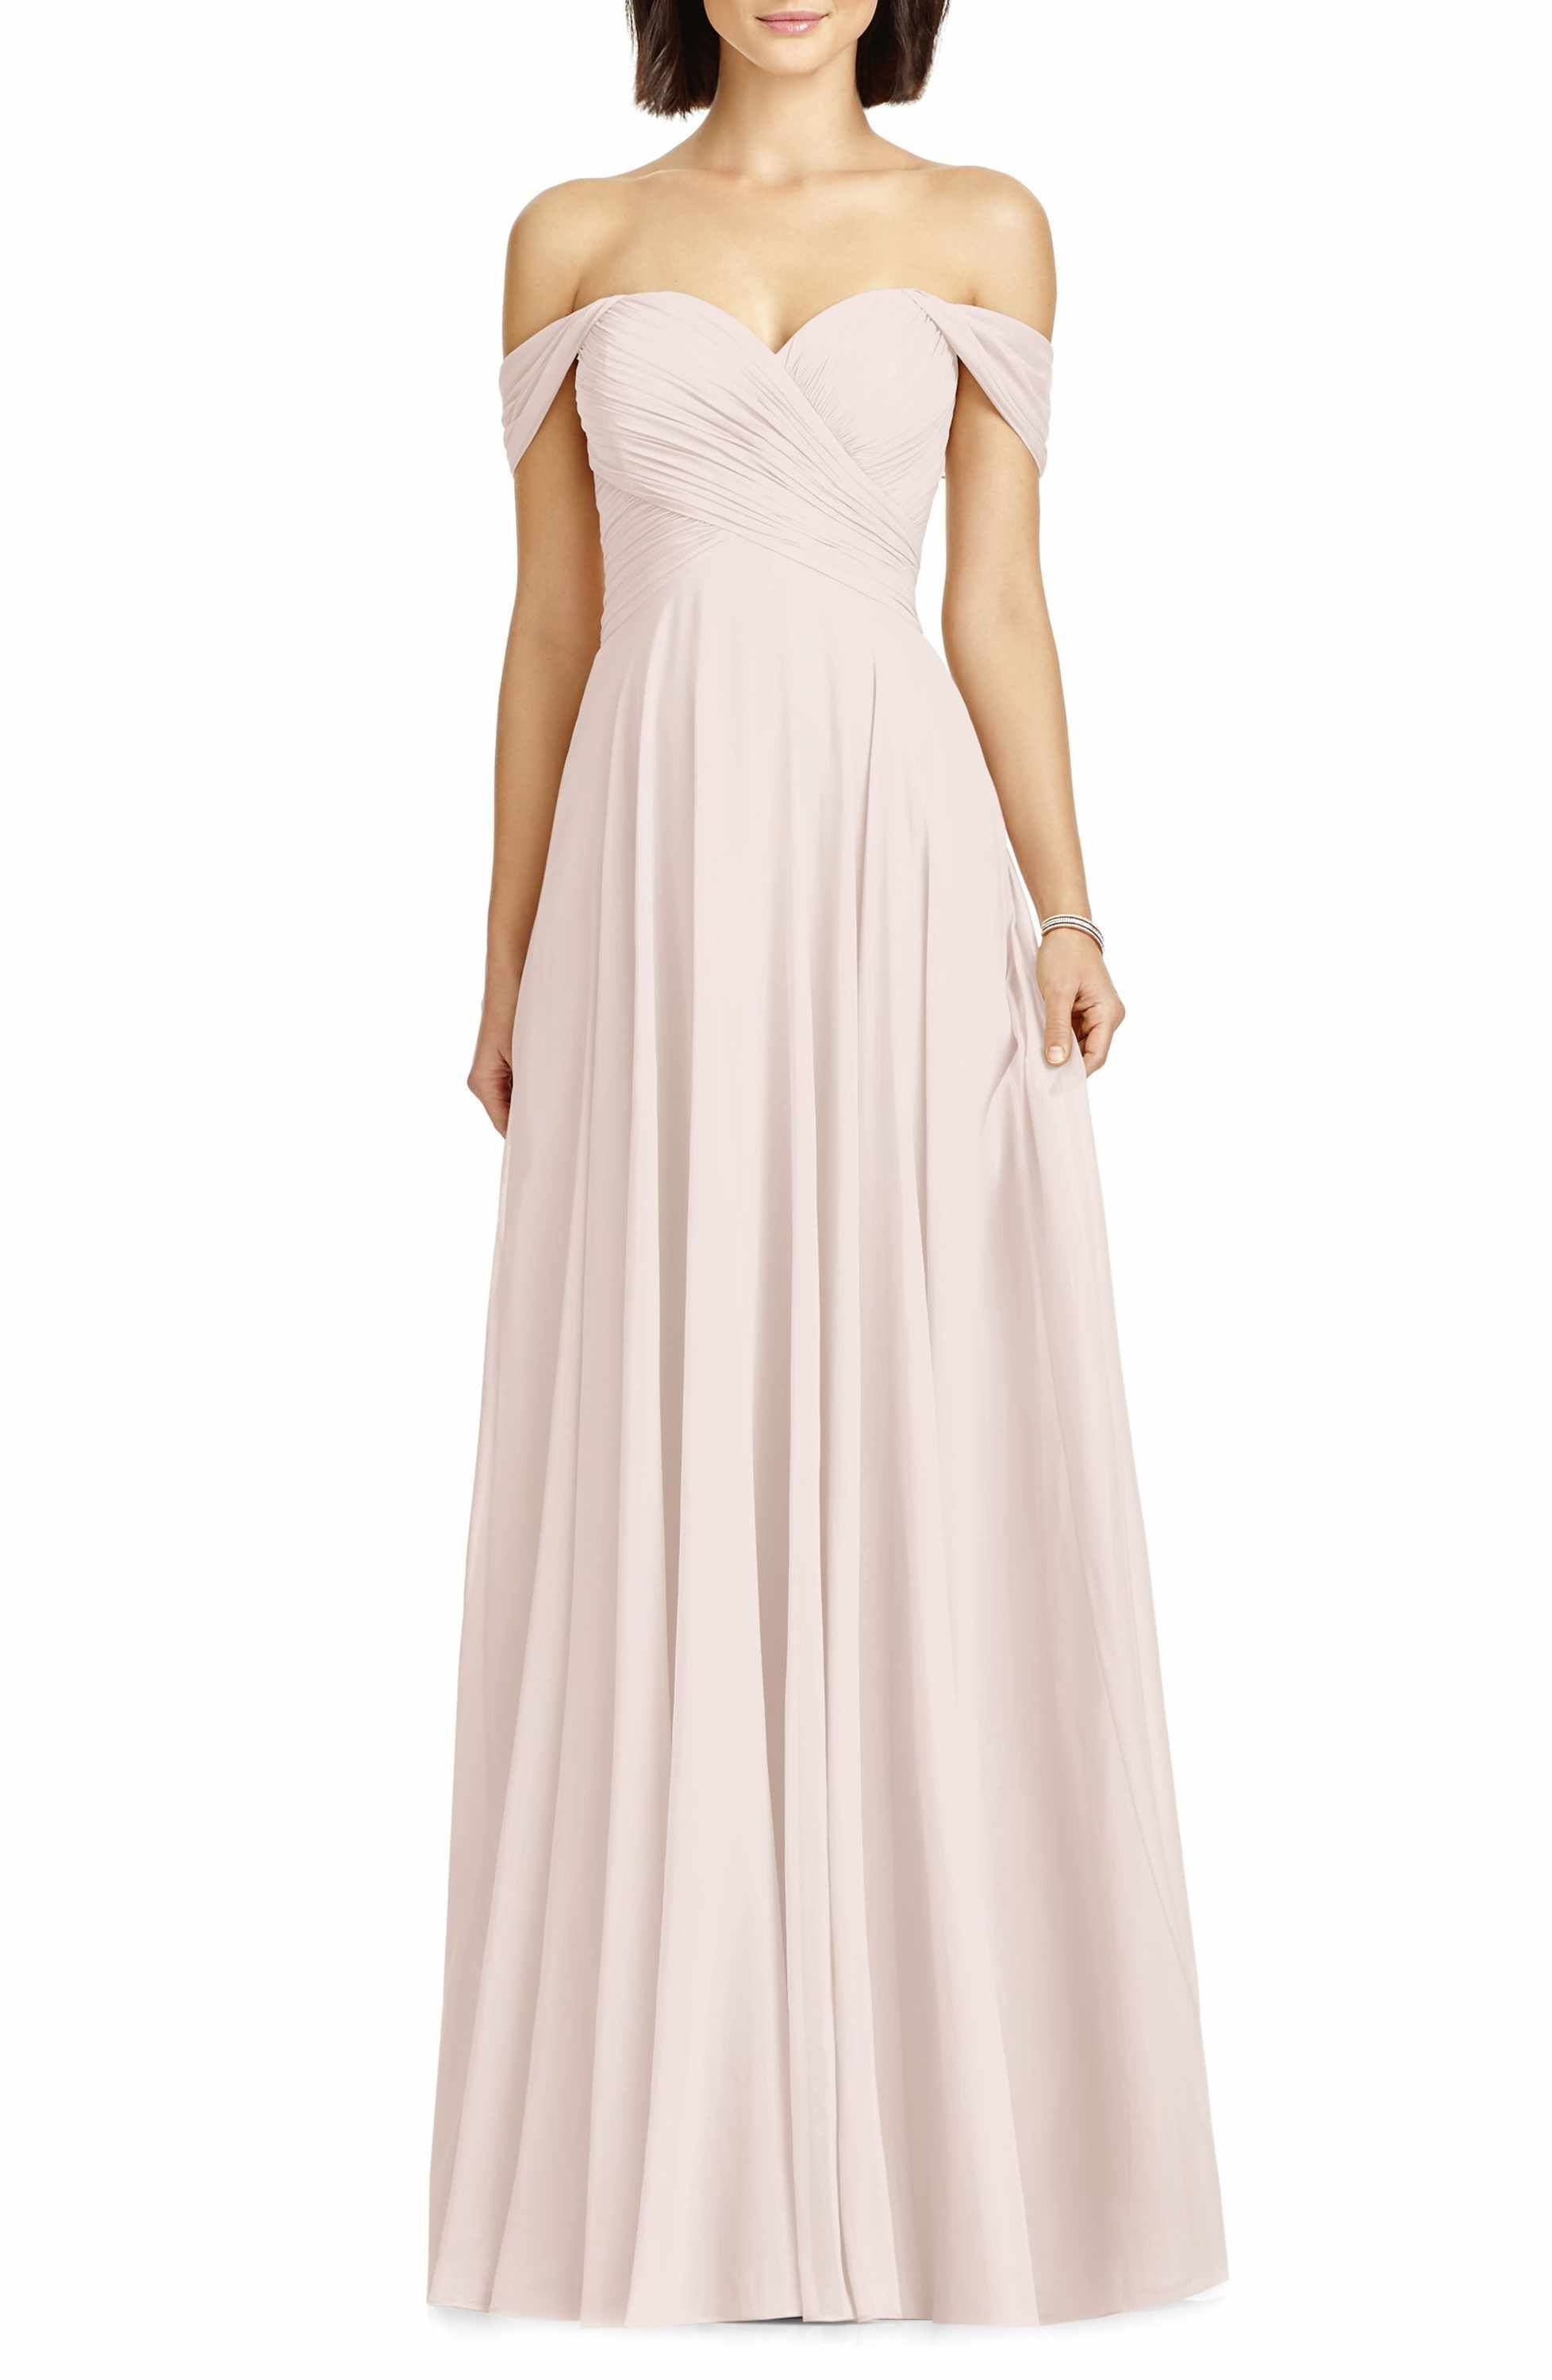 dd5d79bcbe79 Main Image - Dessy Collection Lux Off the Shoulder Chiffon Gown ...